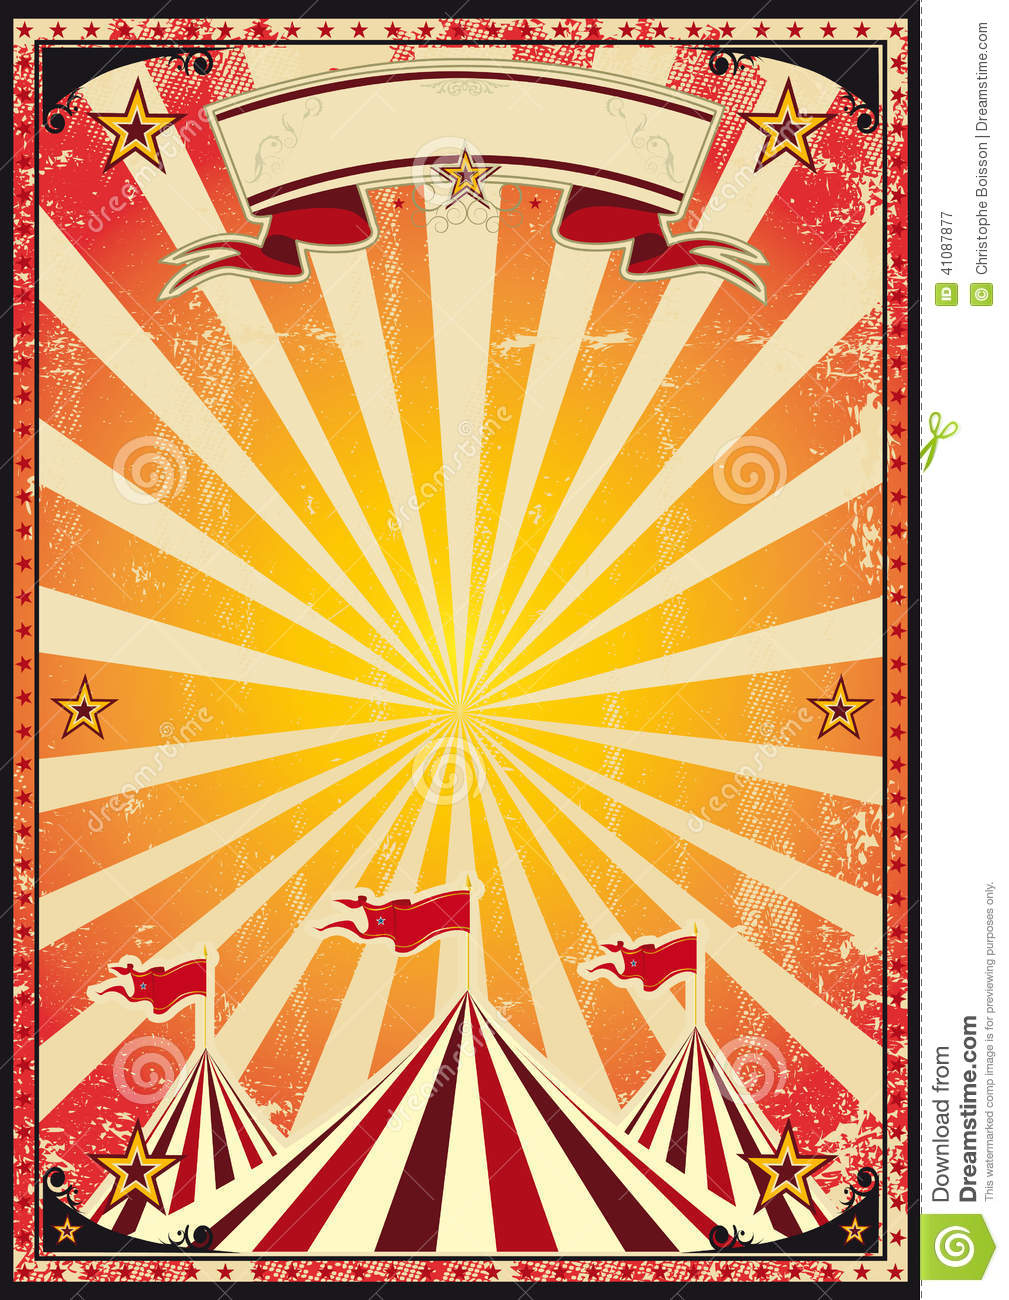 Vintage Circus Poster Background File Name  red-circus-retro-